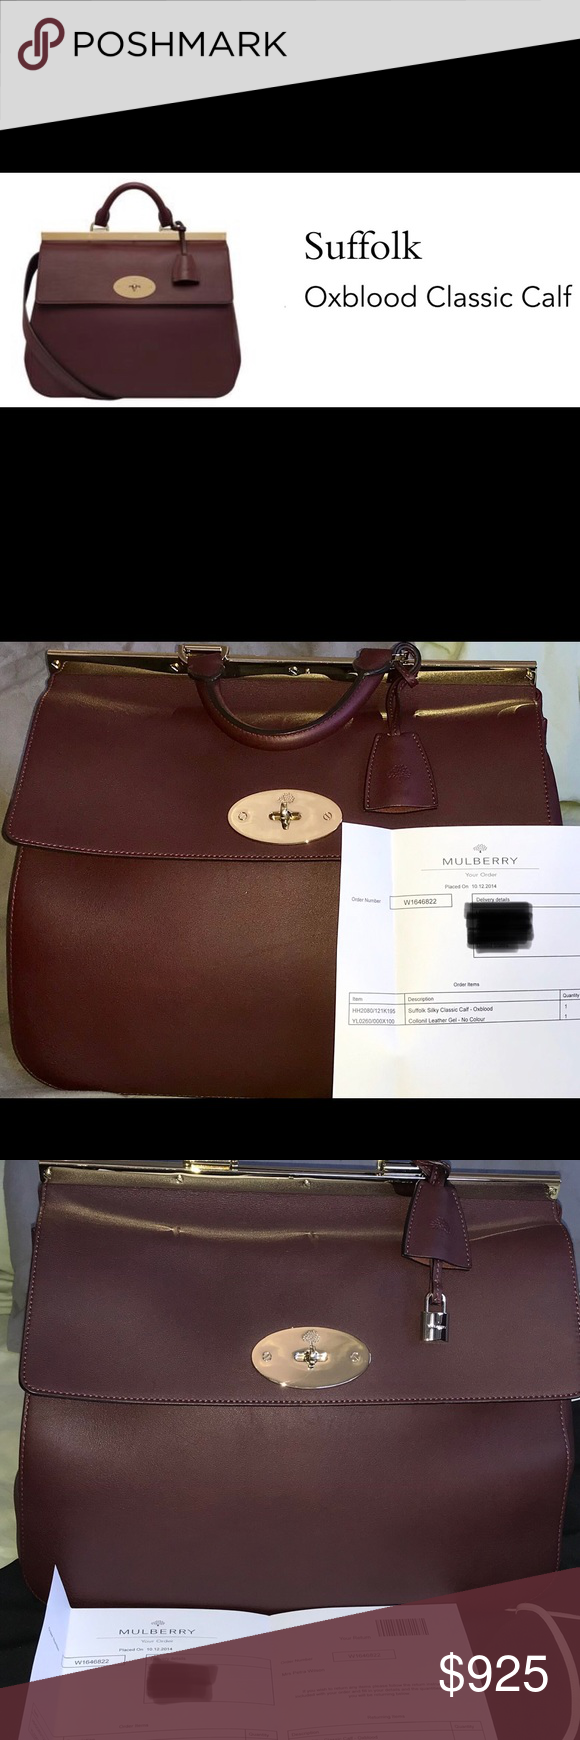 2303d246d0d Mulberry Suffolk Satchel - Authentic, like new in 2018   My Posh ...